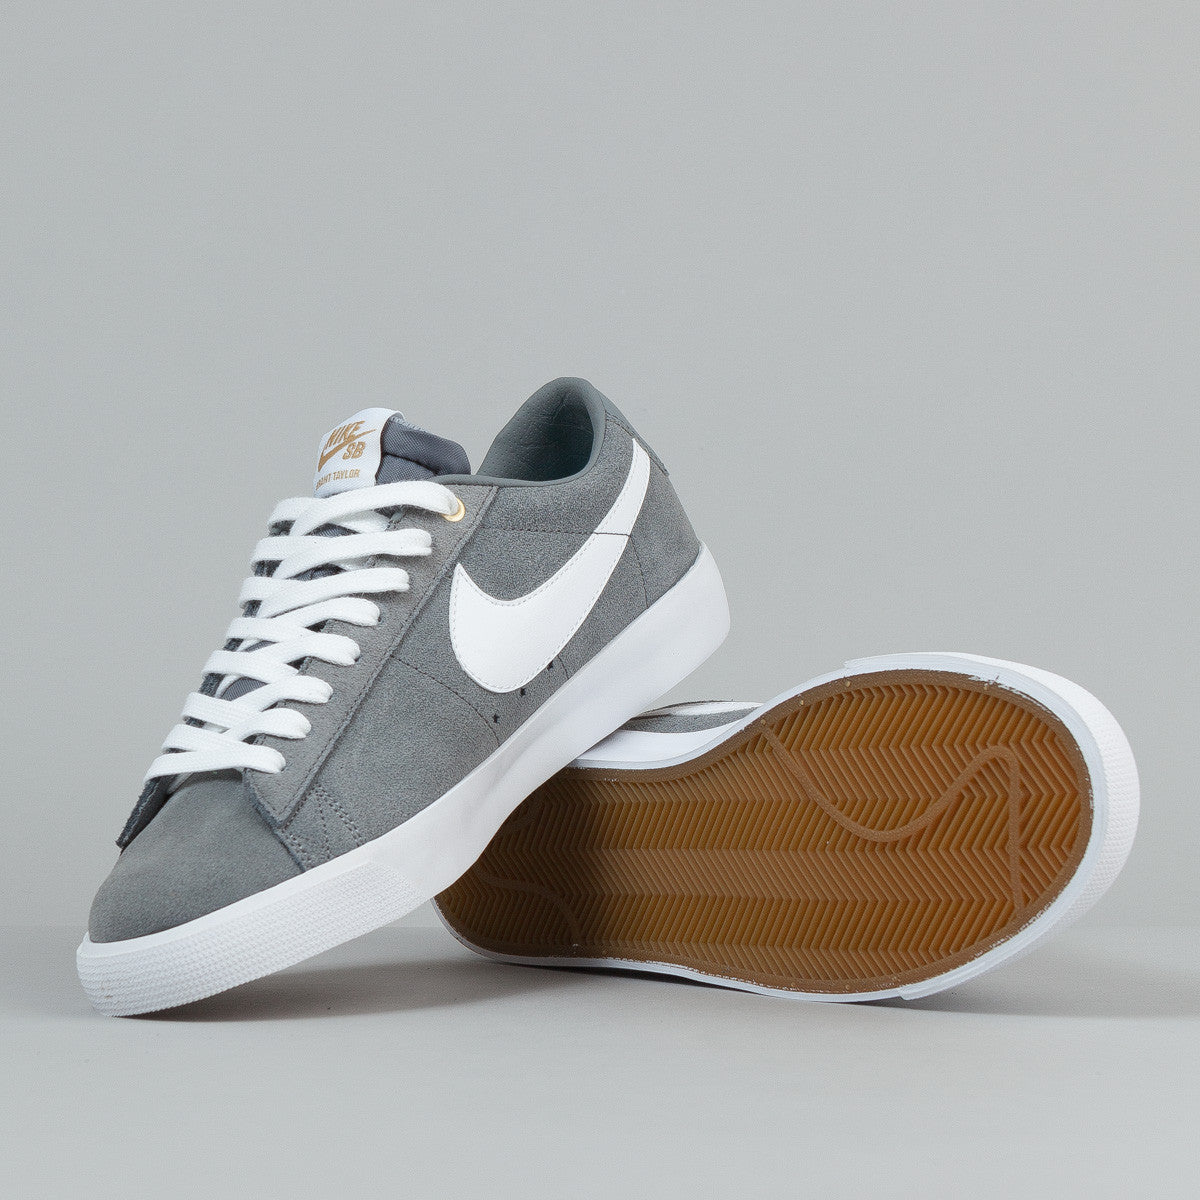 Nike SB Blazer Low GT Shoes  Cool Grey  White  Tide Pool Blue